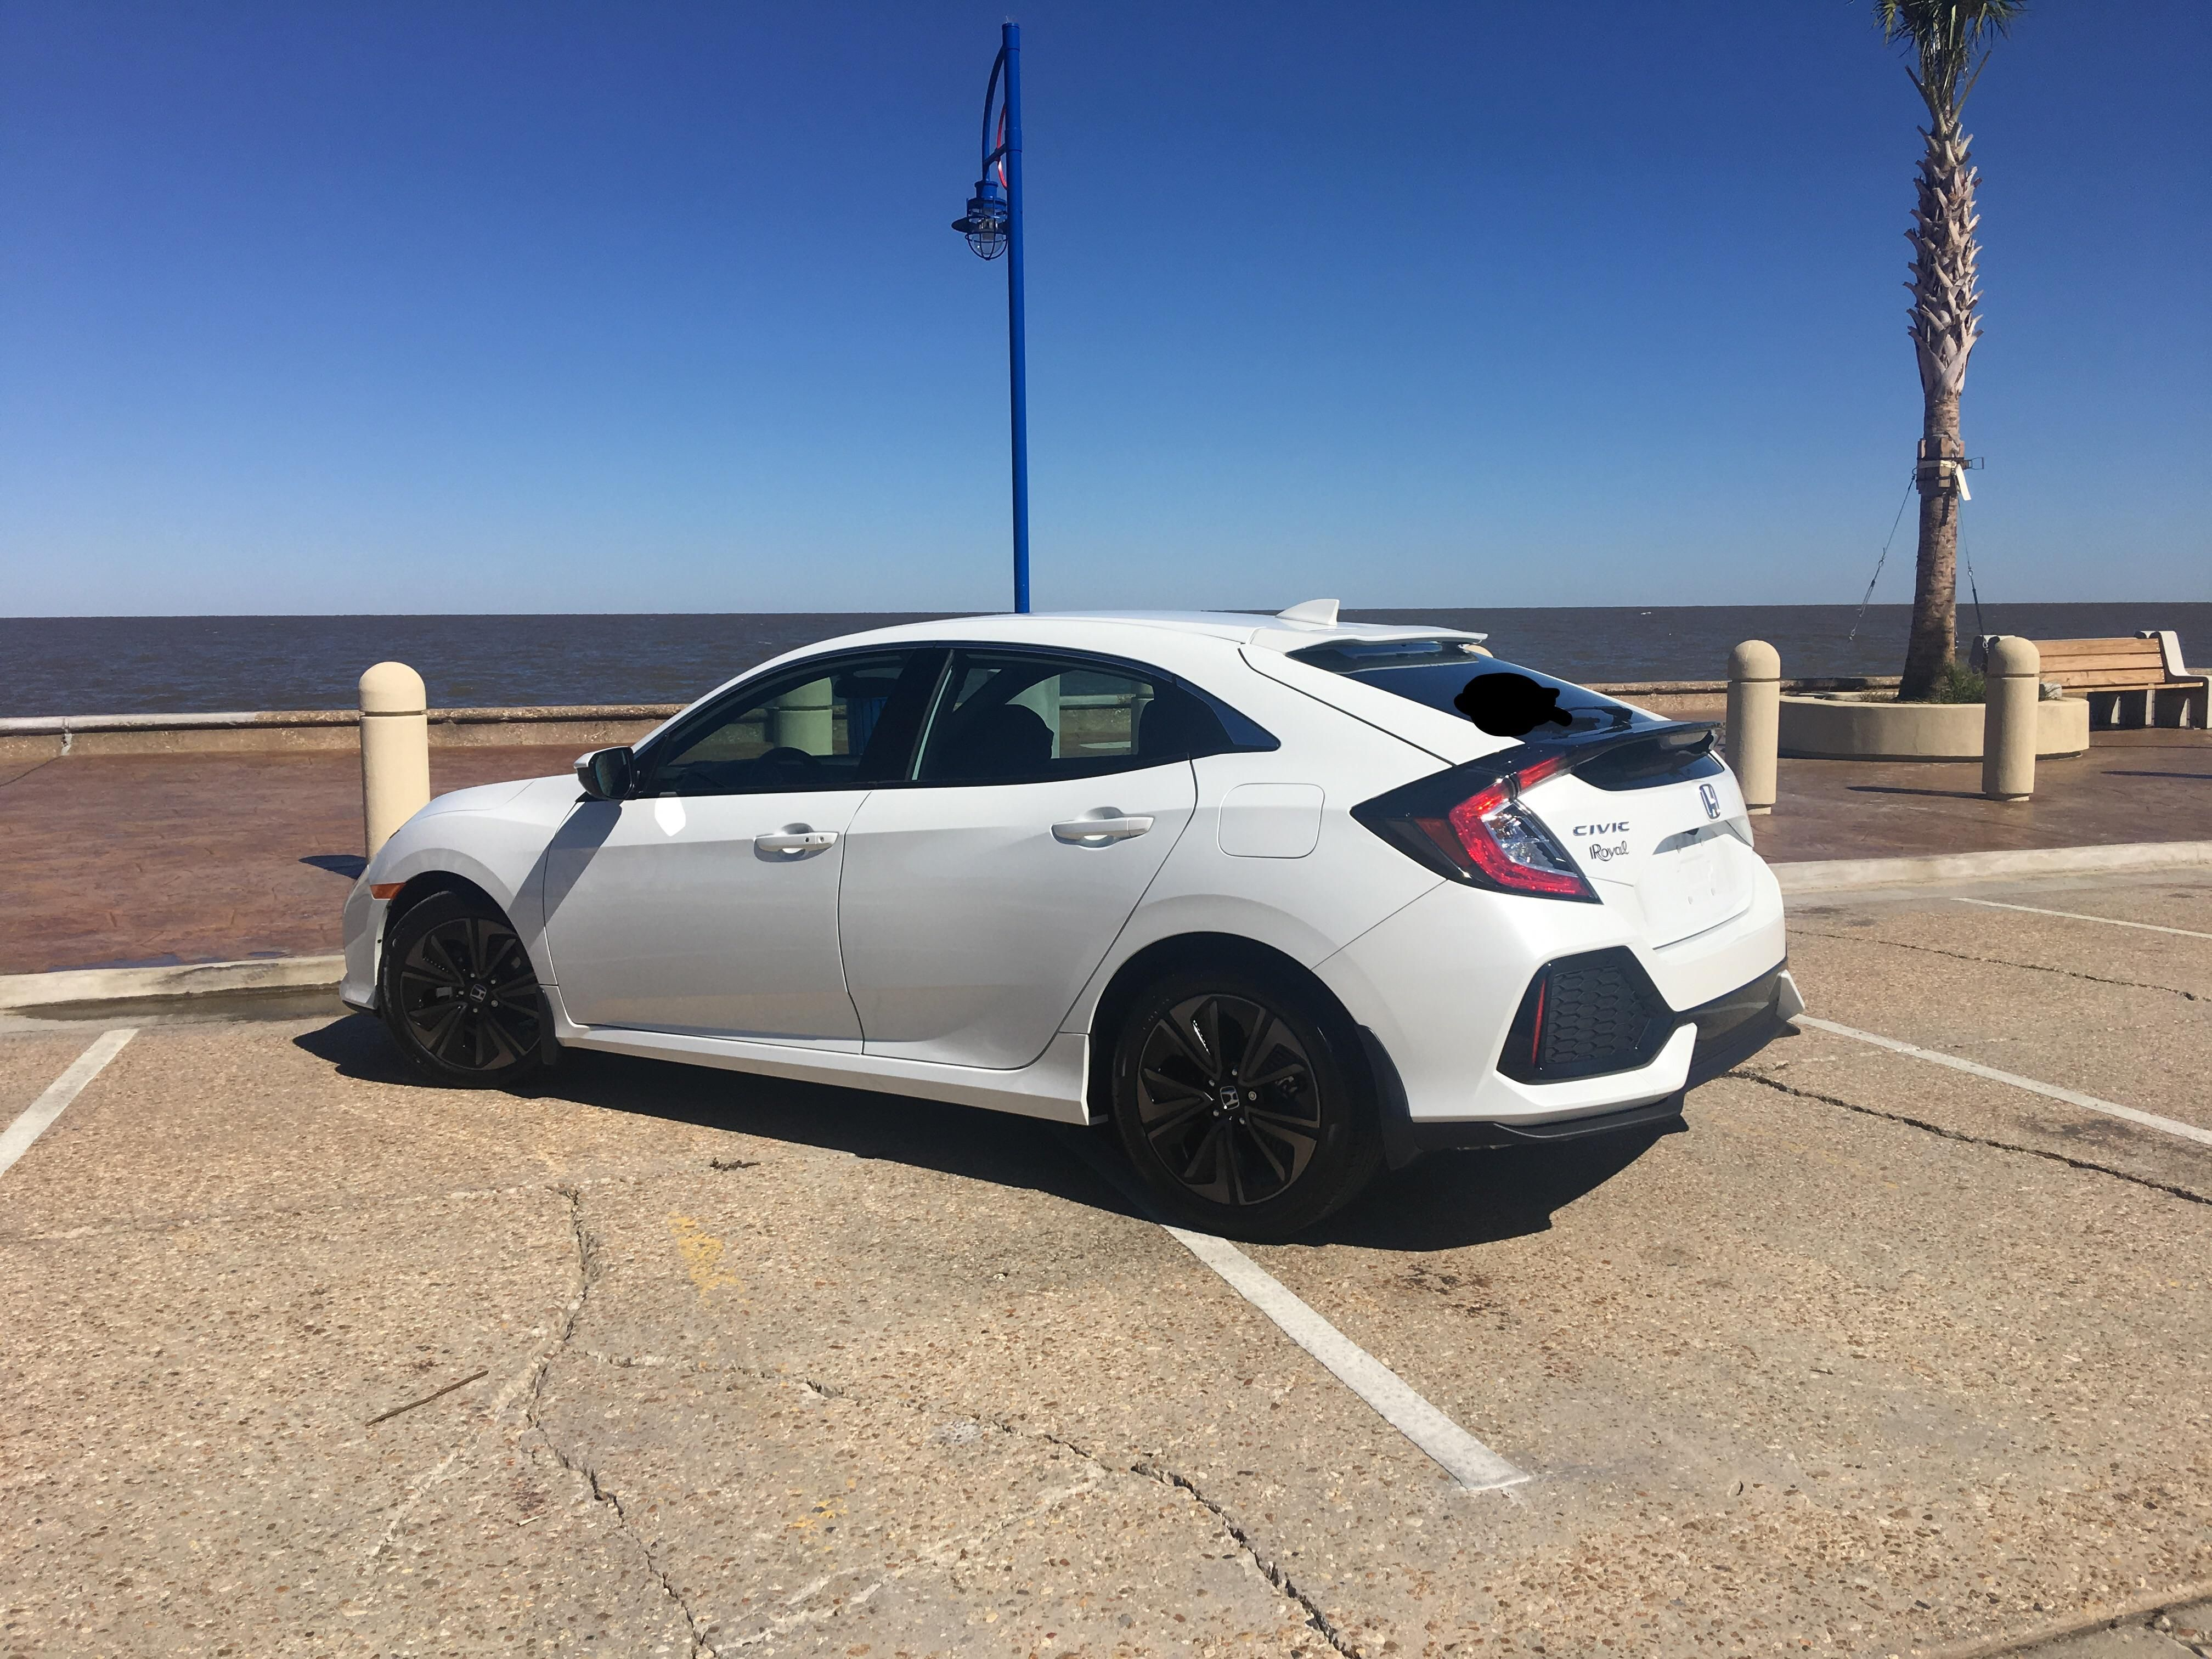 I Love My New Honda 2017 Civic Hatchback Ex In White Hondacivic Hondalife Hondalove Car